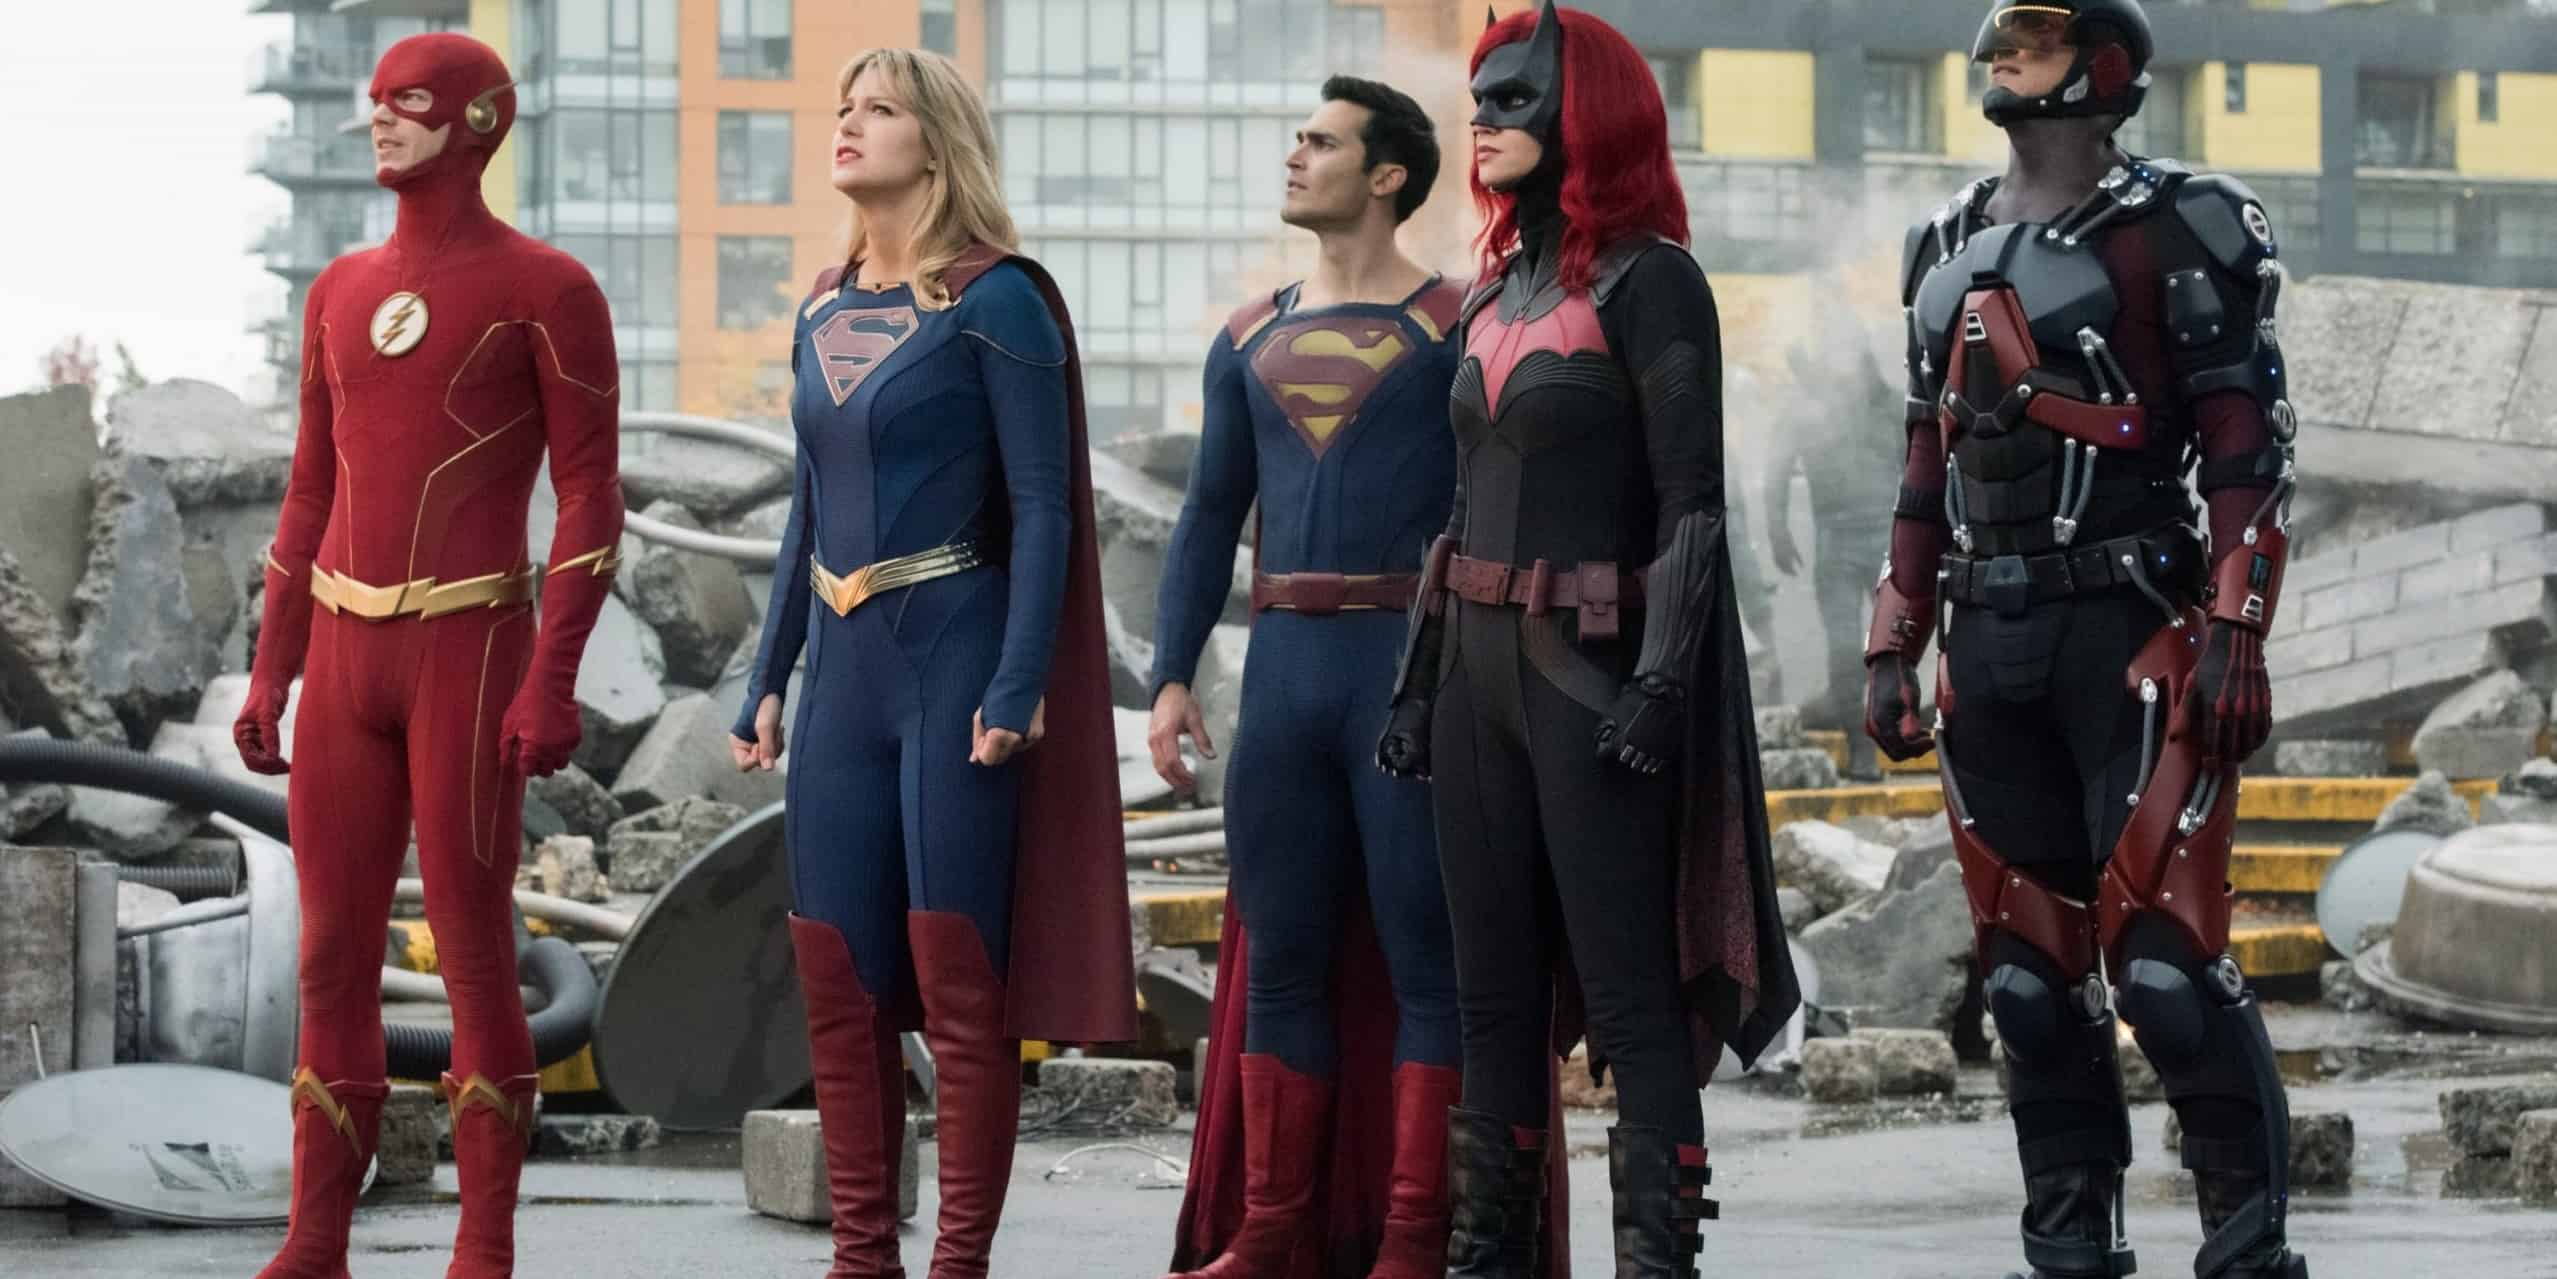 Crisis on infinite earths final trailer Group shot featured